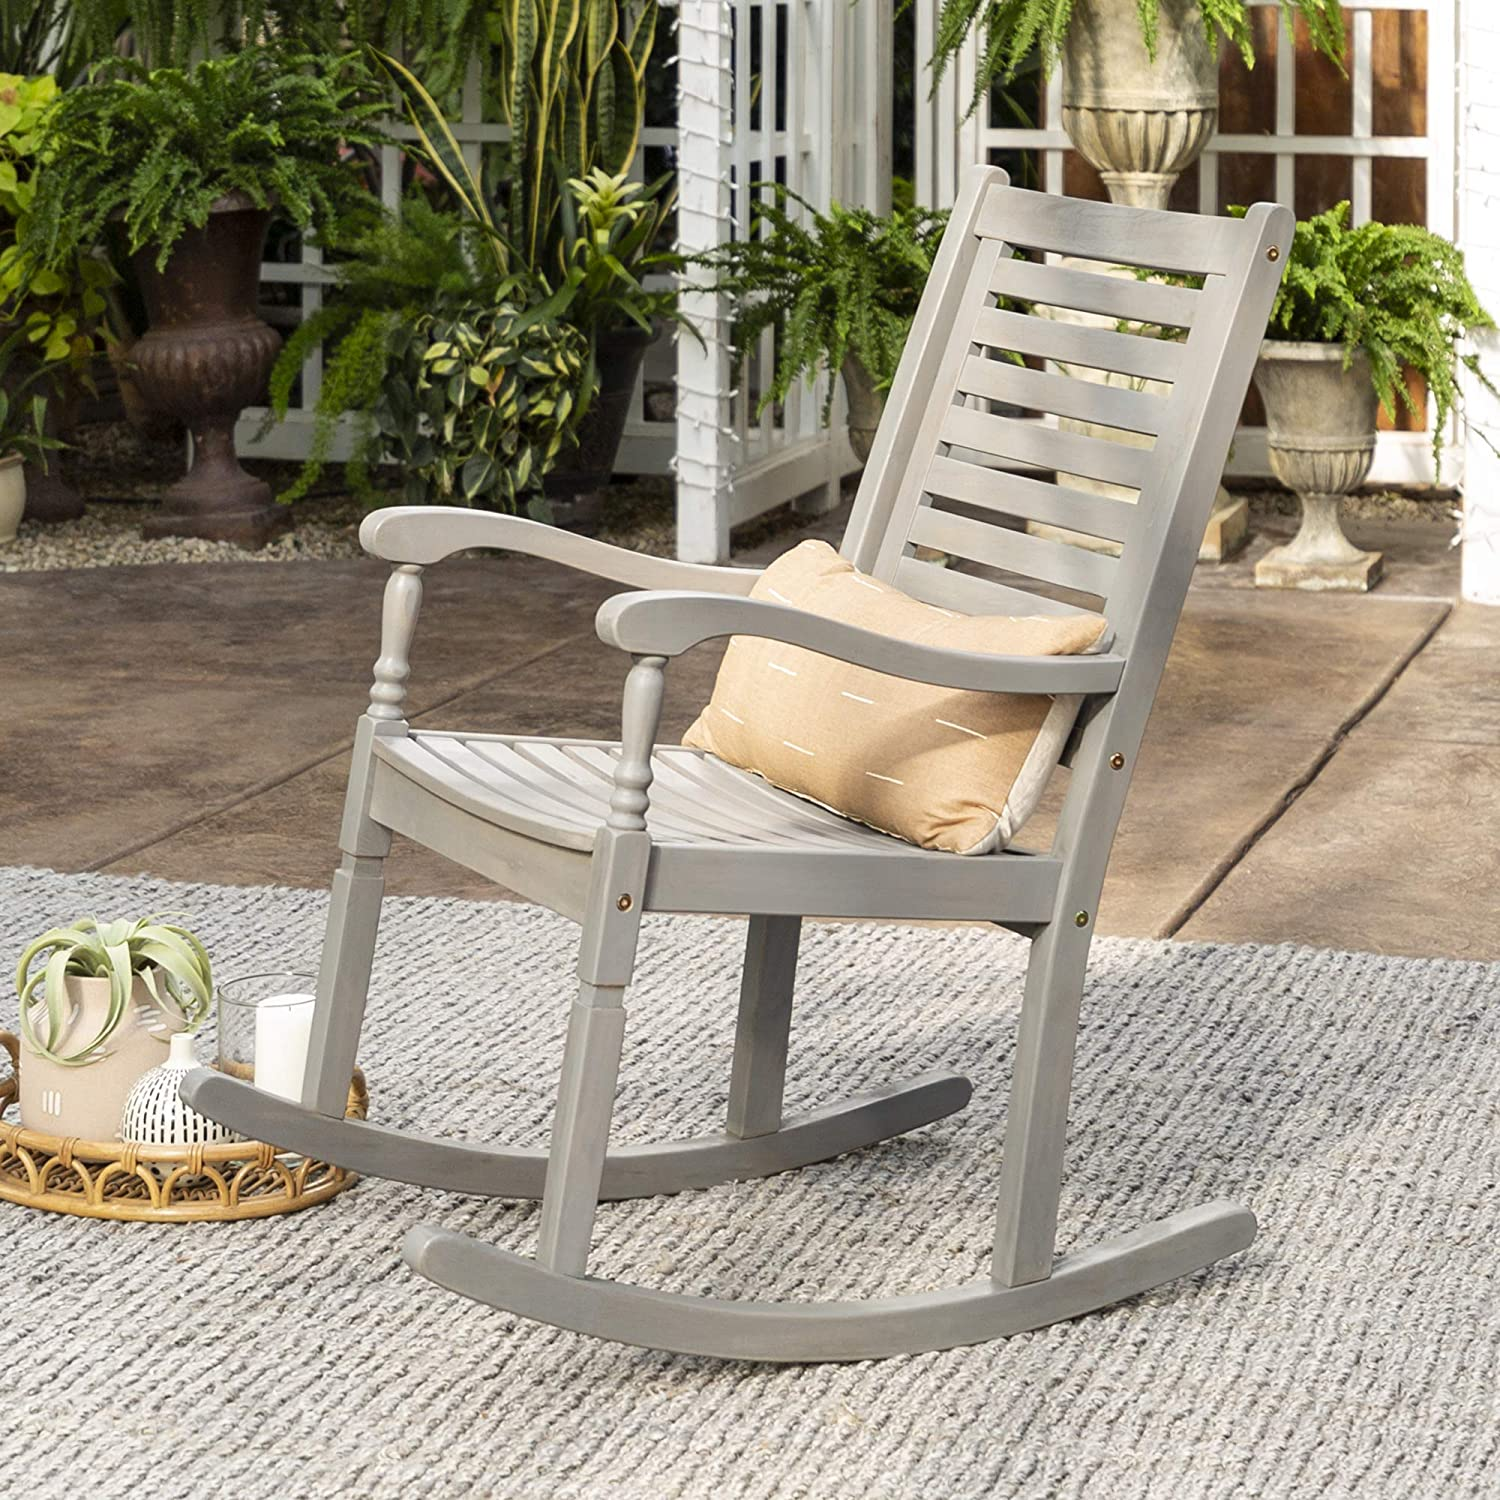 Home Accent Furnishings Patio Solid Acacia Wood Rocking Chair Gray Wash